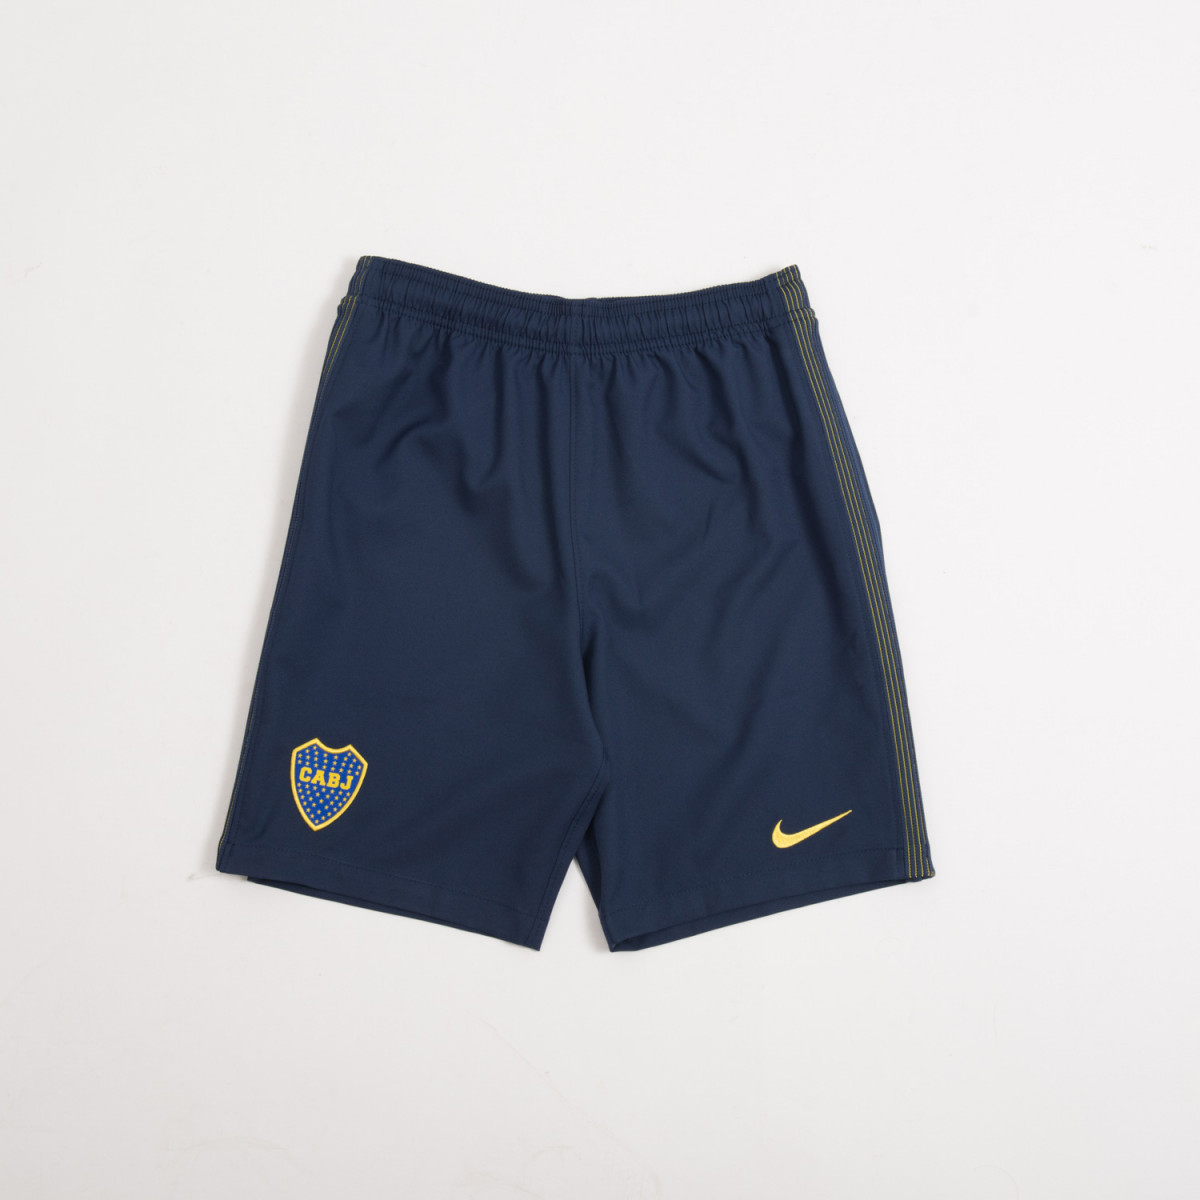 SHORT NIKE BOCA JUNIORS BOYS 2017